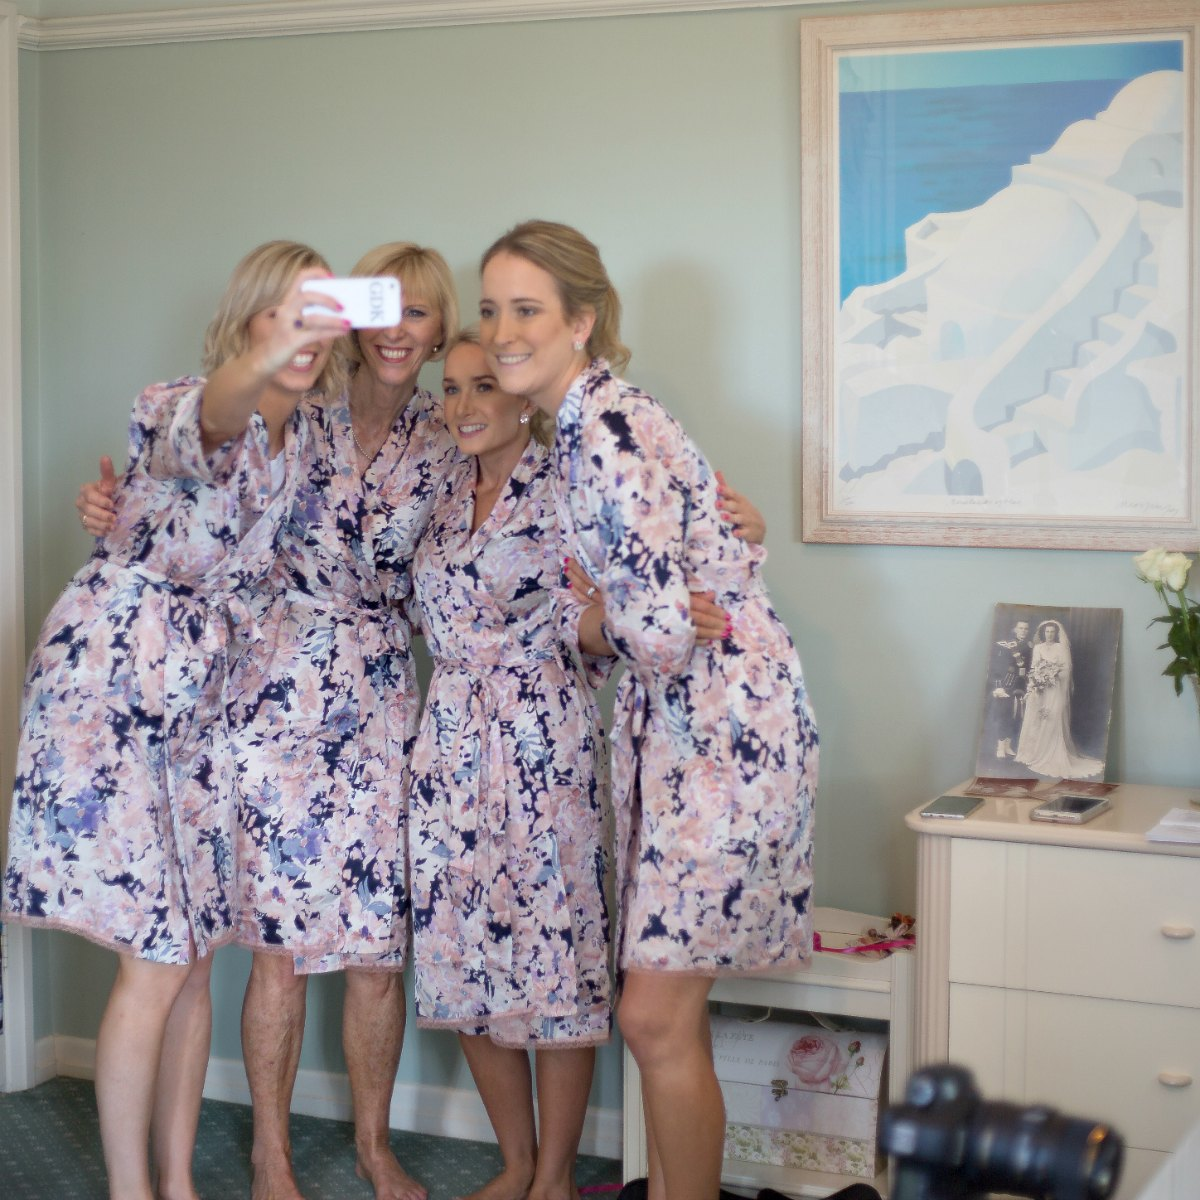 papinelle floral bridesmaid robes group bridal party getting ready photo